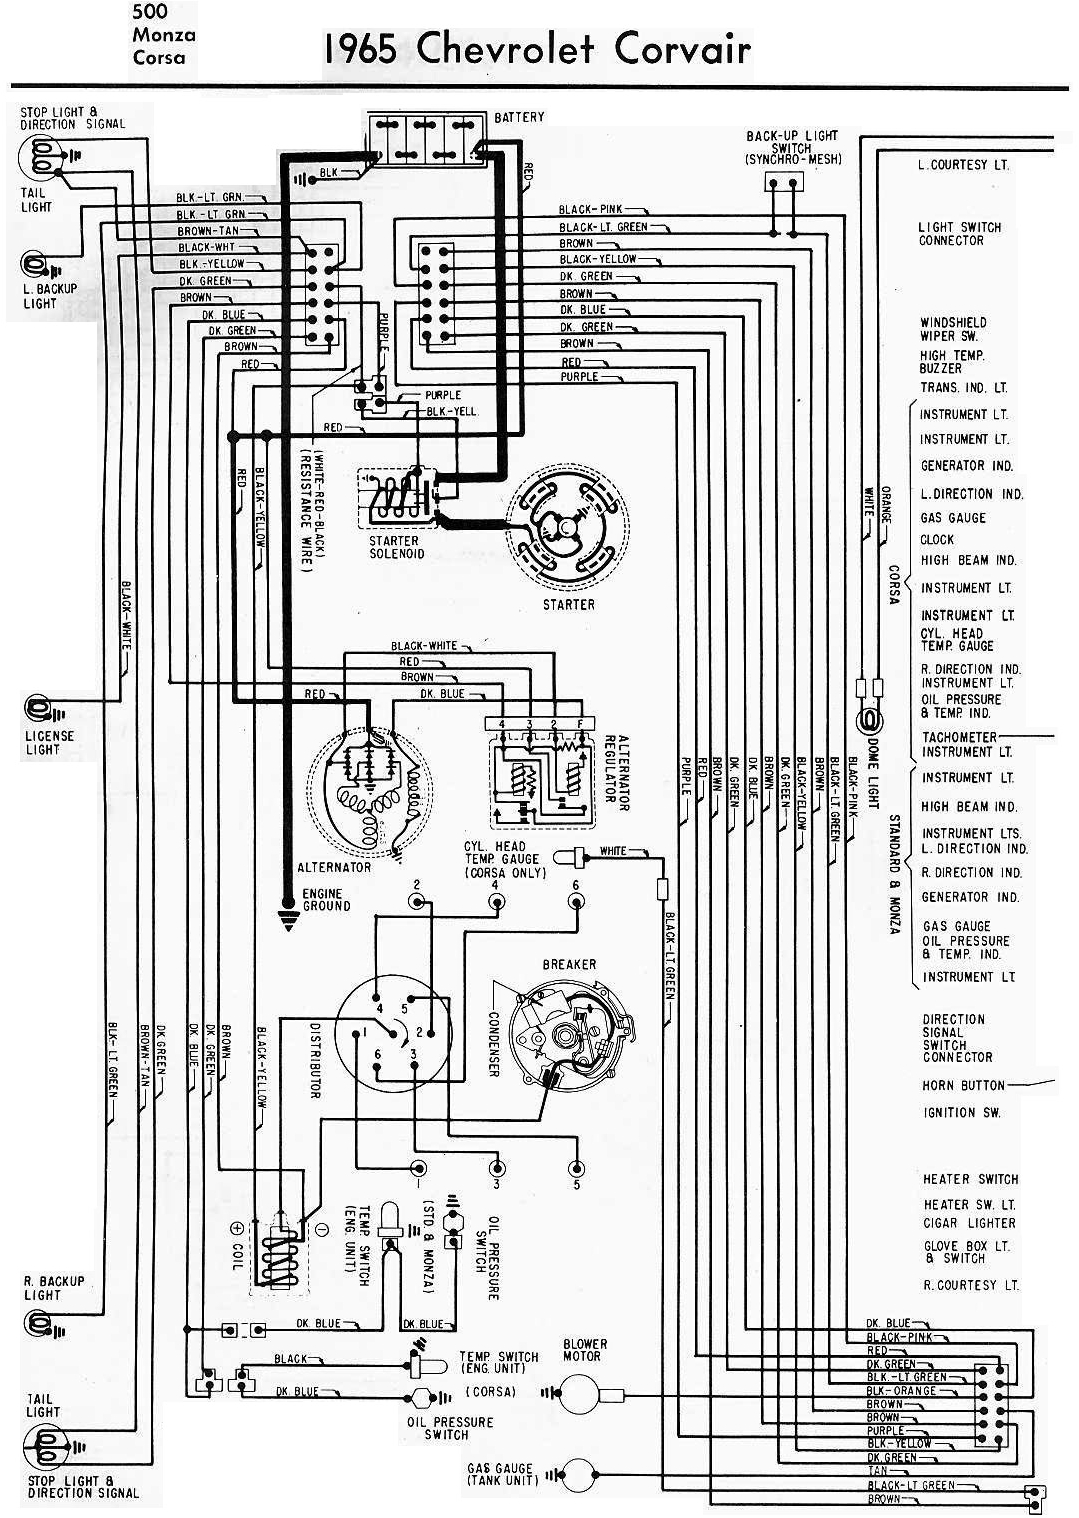 Diagram 1965 Chevrolet Corvair Electrical Wiring Diagram